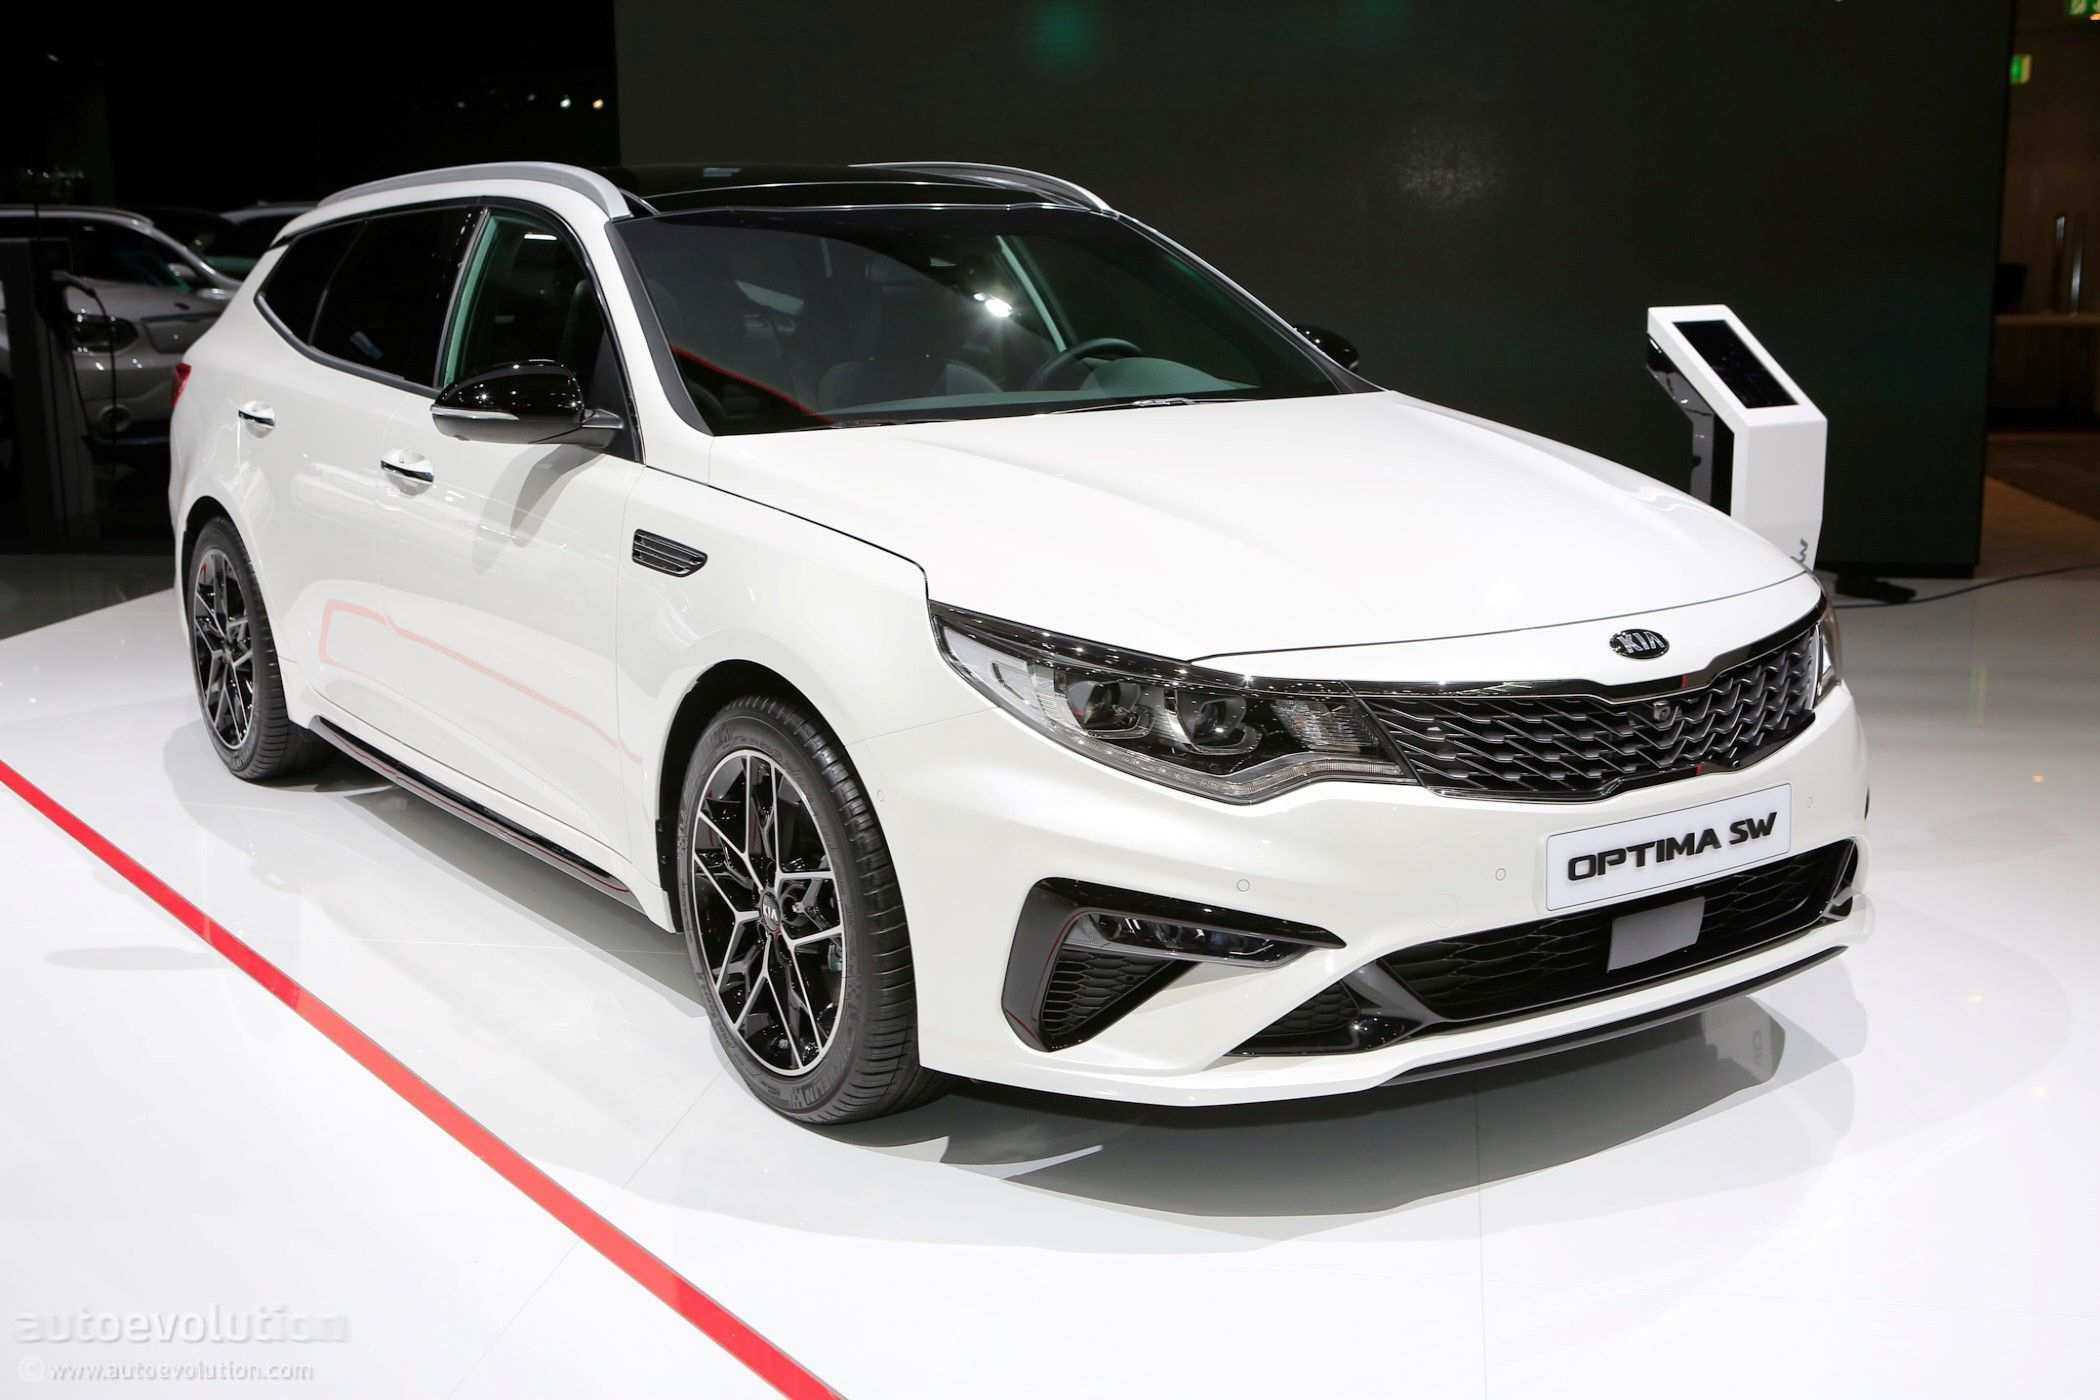 22 Gallery of Kia Optima 2020 New Concept Concept with Kia Optima 2020 New Concept